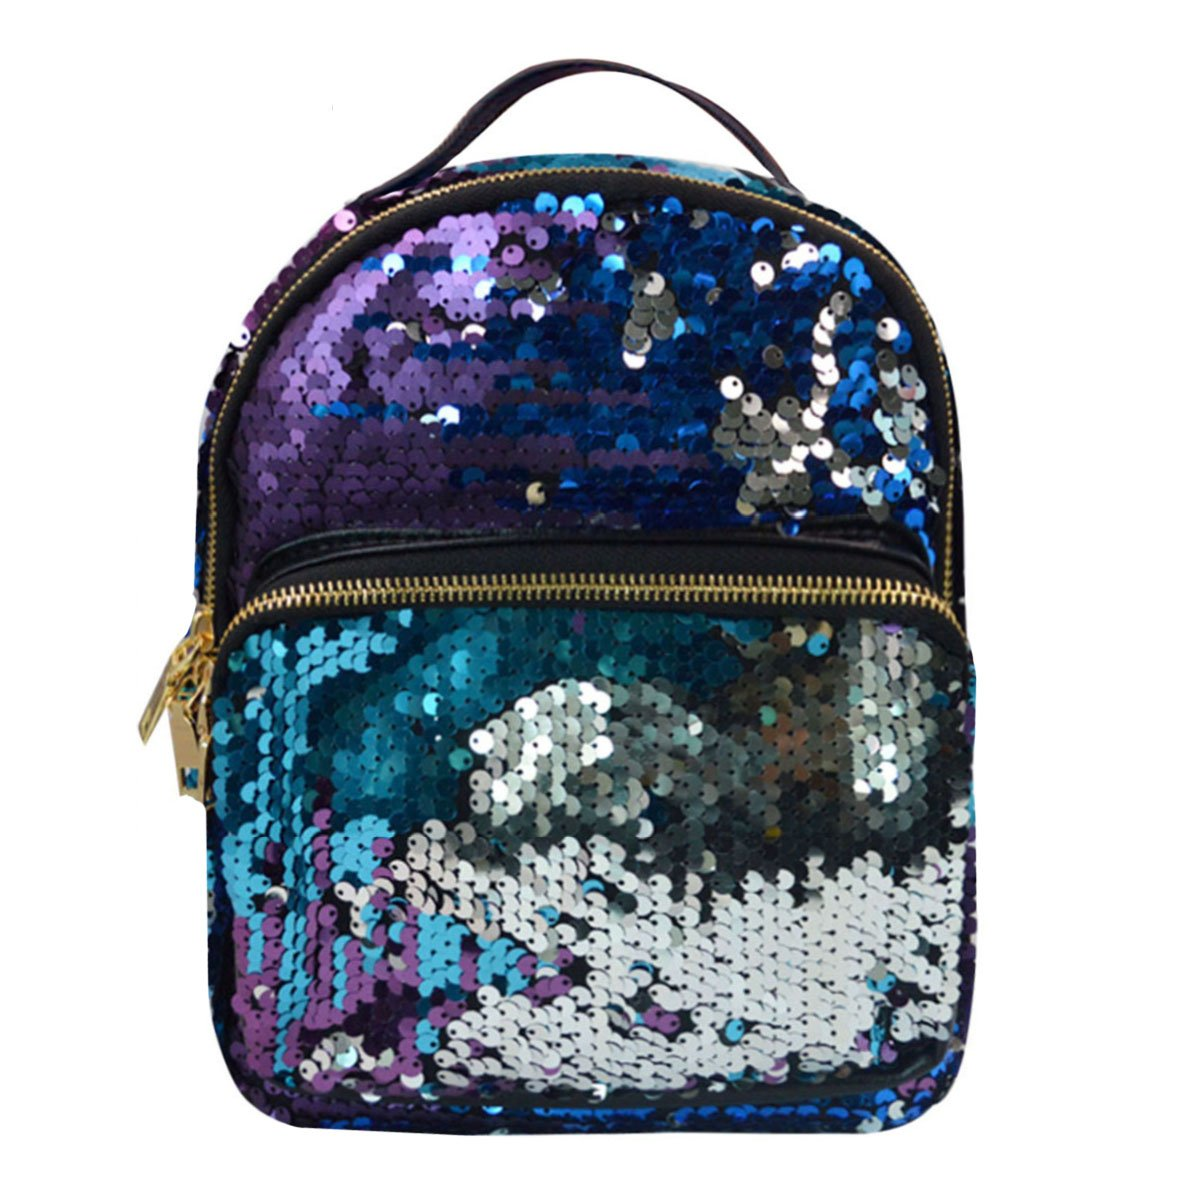 A  bluee Danse Jupe Sequins Faux Leather Backpack Fashion Daypack Casual School Bag Travel Satchel(bluee)